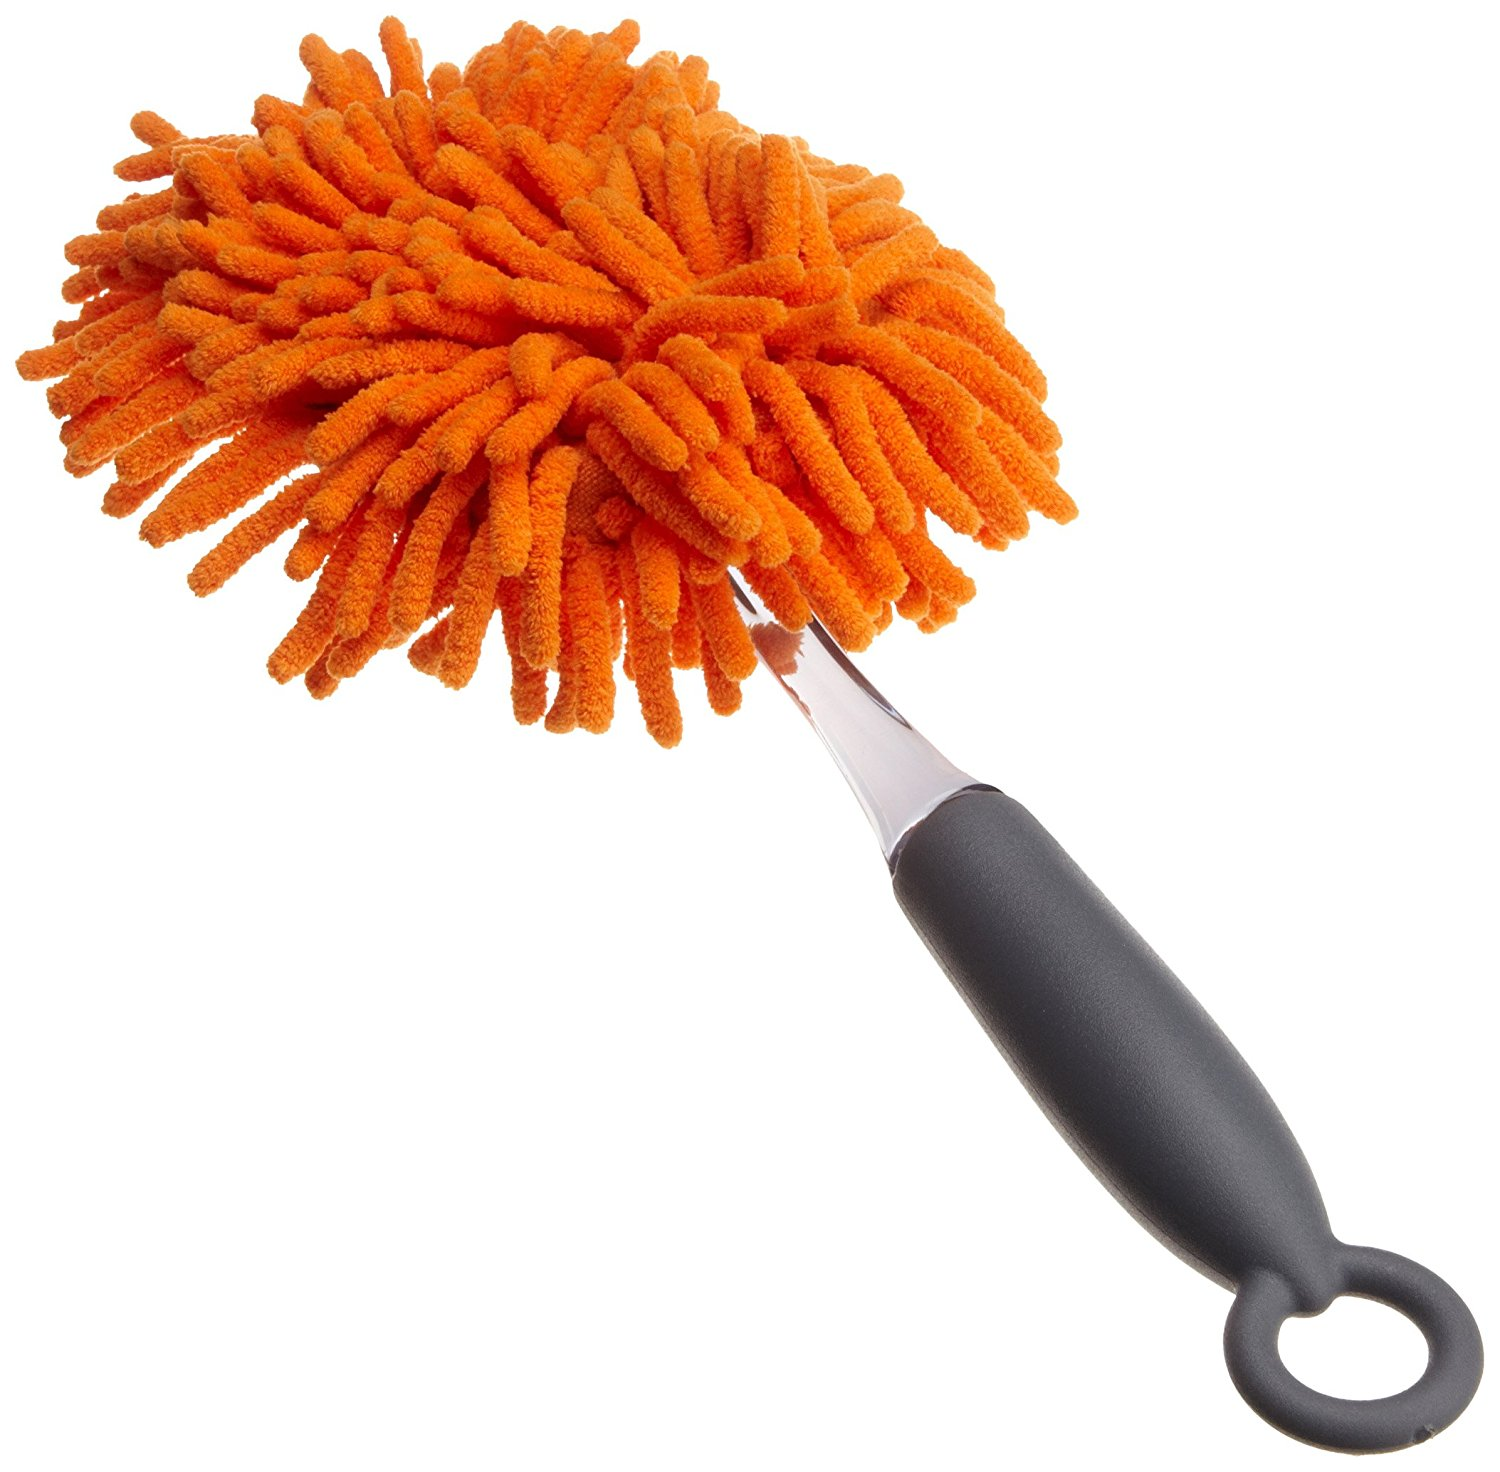 Dusting Tips and Tricks, Easy Dusting Tips, Feather Dusters, The Best Feather Dusters, Cleaning, Home Cleaning Hacks, Cleaning TIps and Tricks, Popular Pin